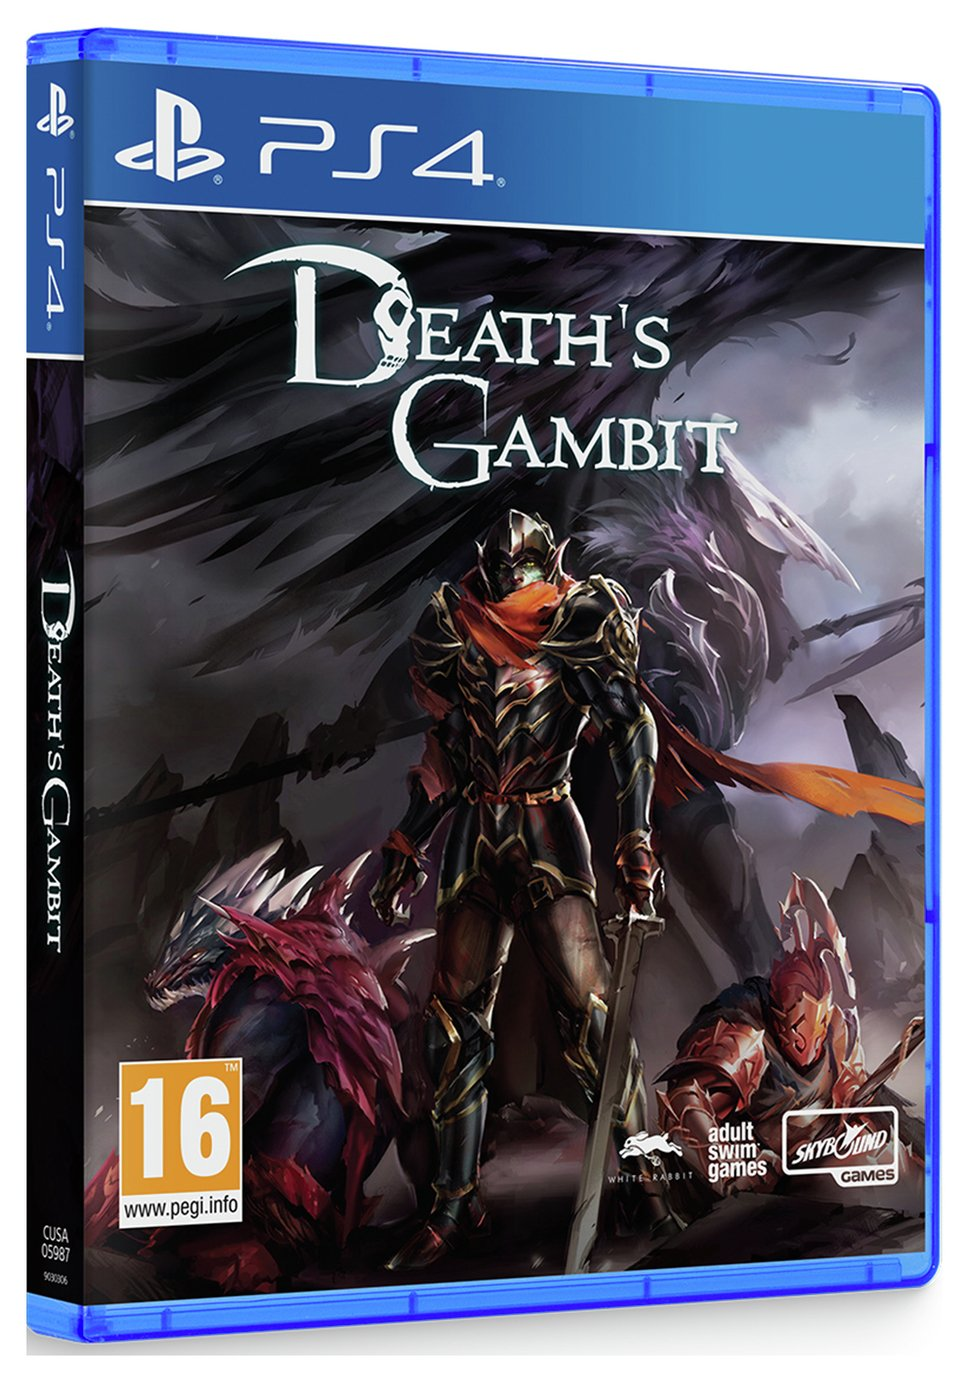 Death's Gambit PS4 Game from Death's Gambit